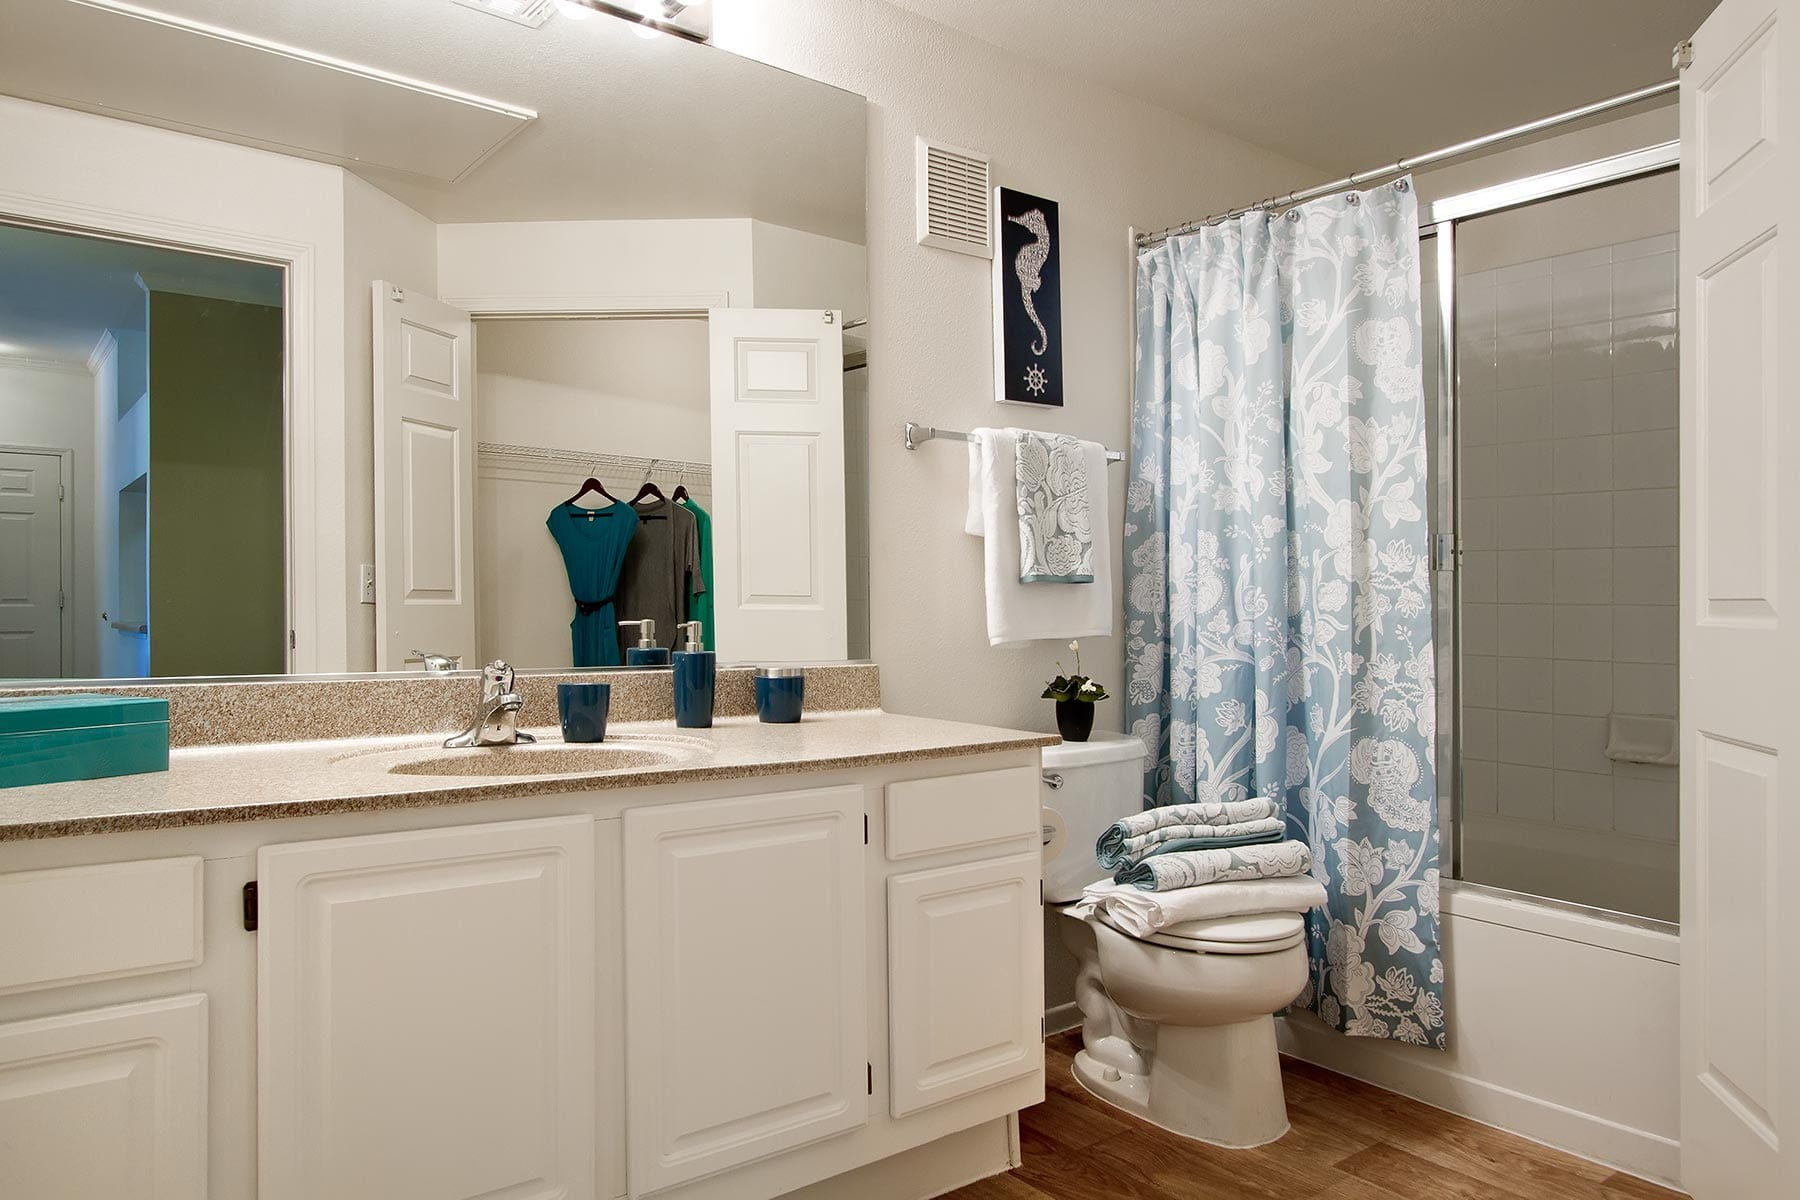 A bathroom with plush plush towels, smooth countertops, and a sliding glass shower door.